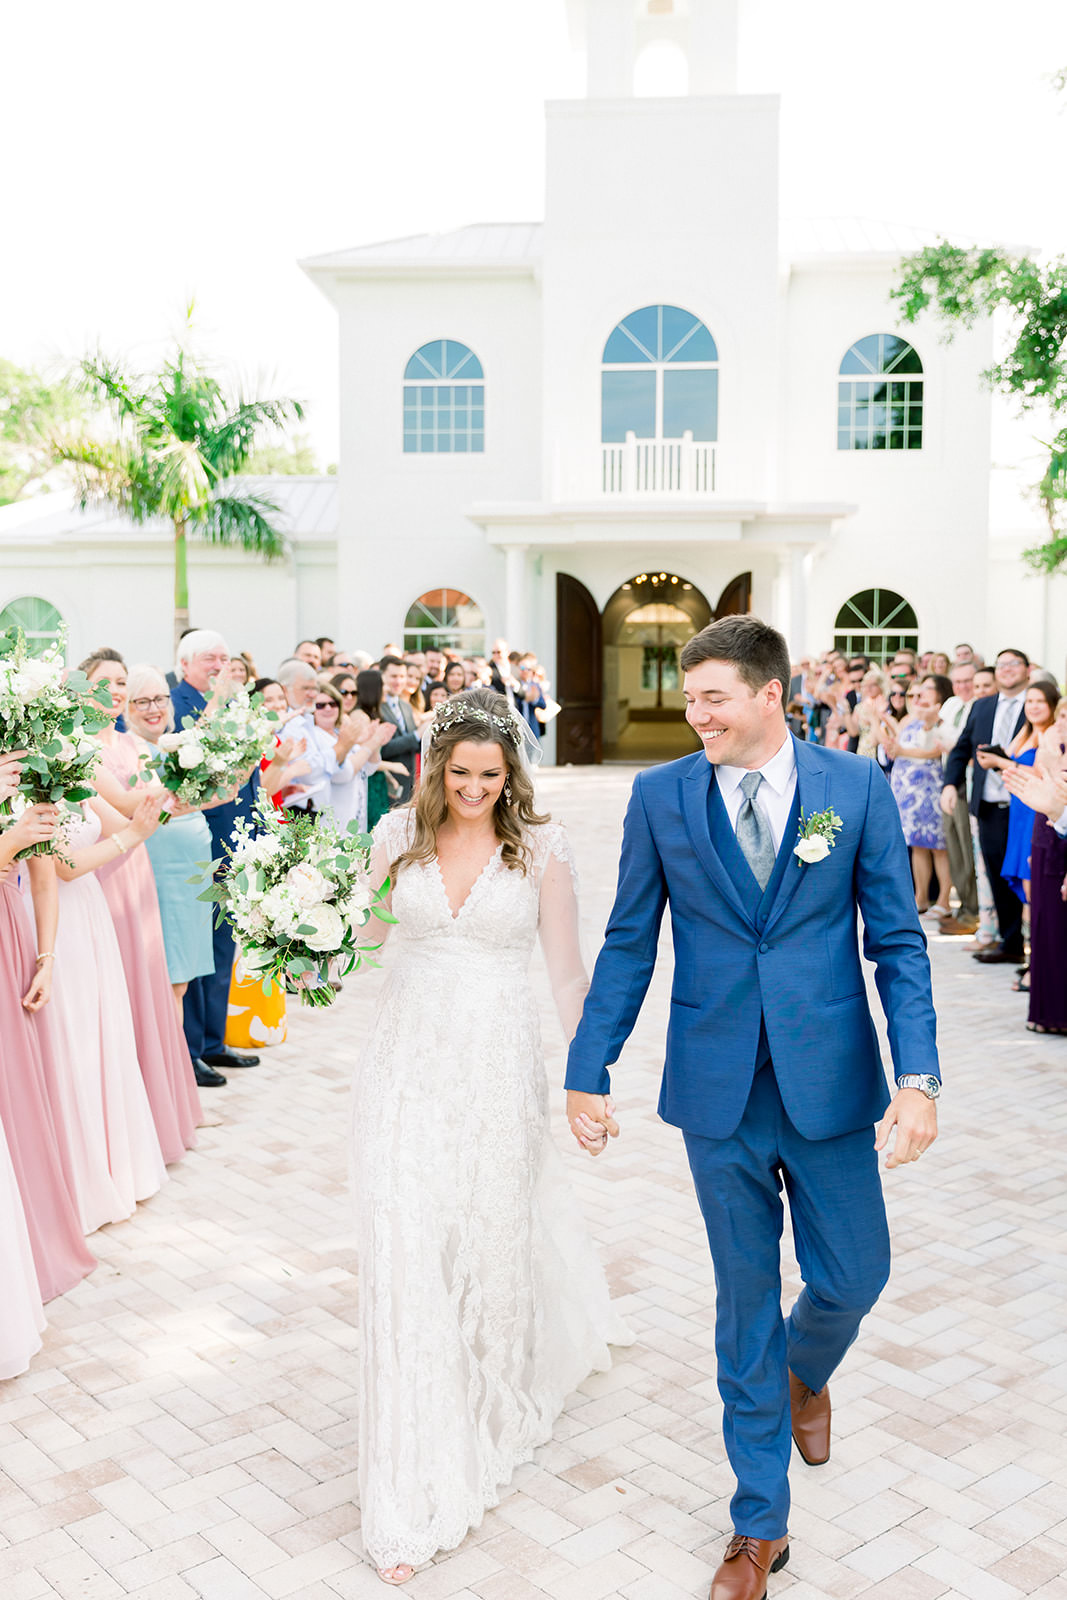 Boho Inspired Florida Bride and Groom Just Married Wedding Exit Processional | Tampa Bay Wedding Ceremony Venue Harborside Chapel | Tampa Bay Wedding Photographers Shauna and Jordon Photography